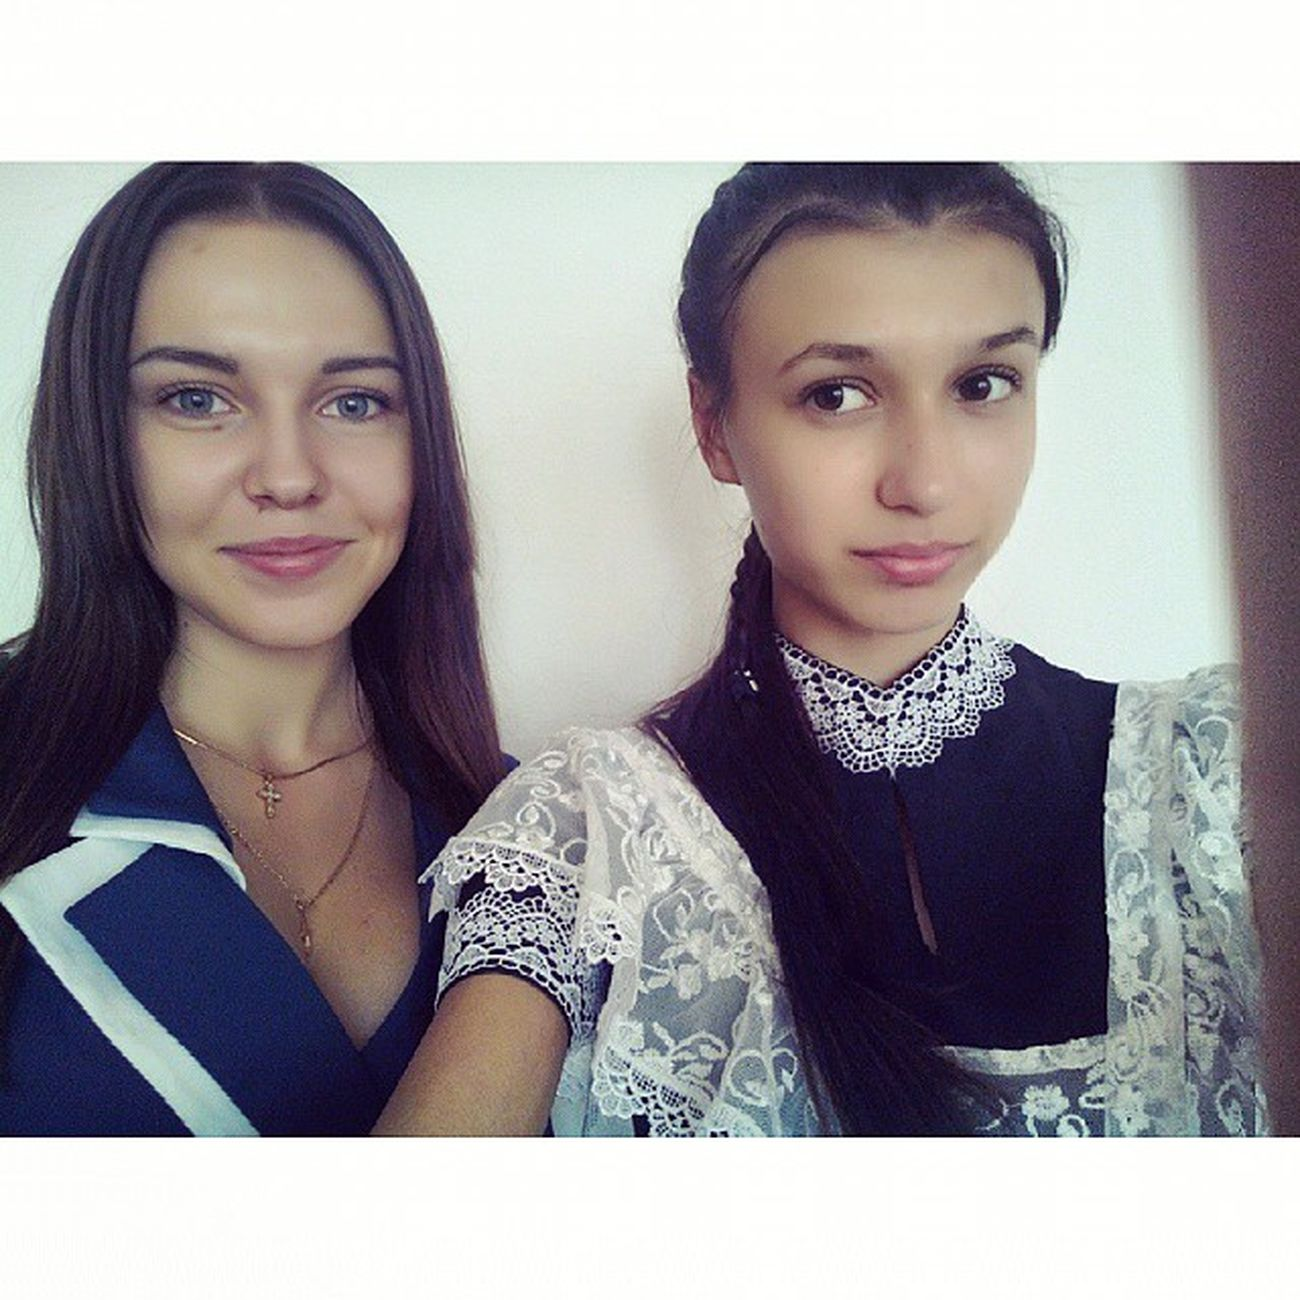 ??Bestfriends Selfierussia School